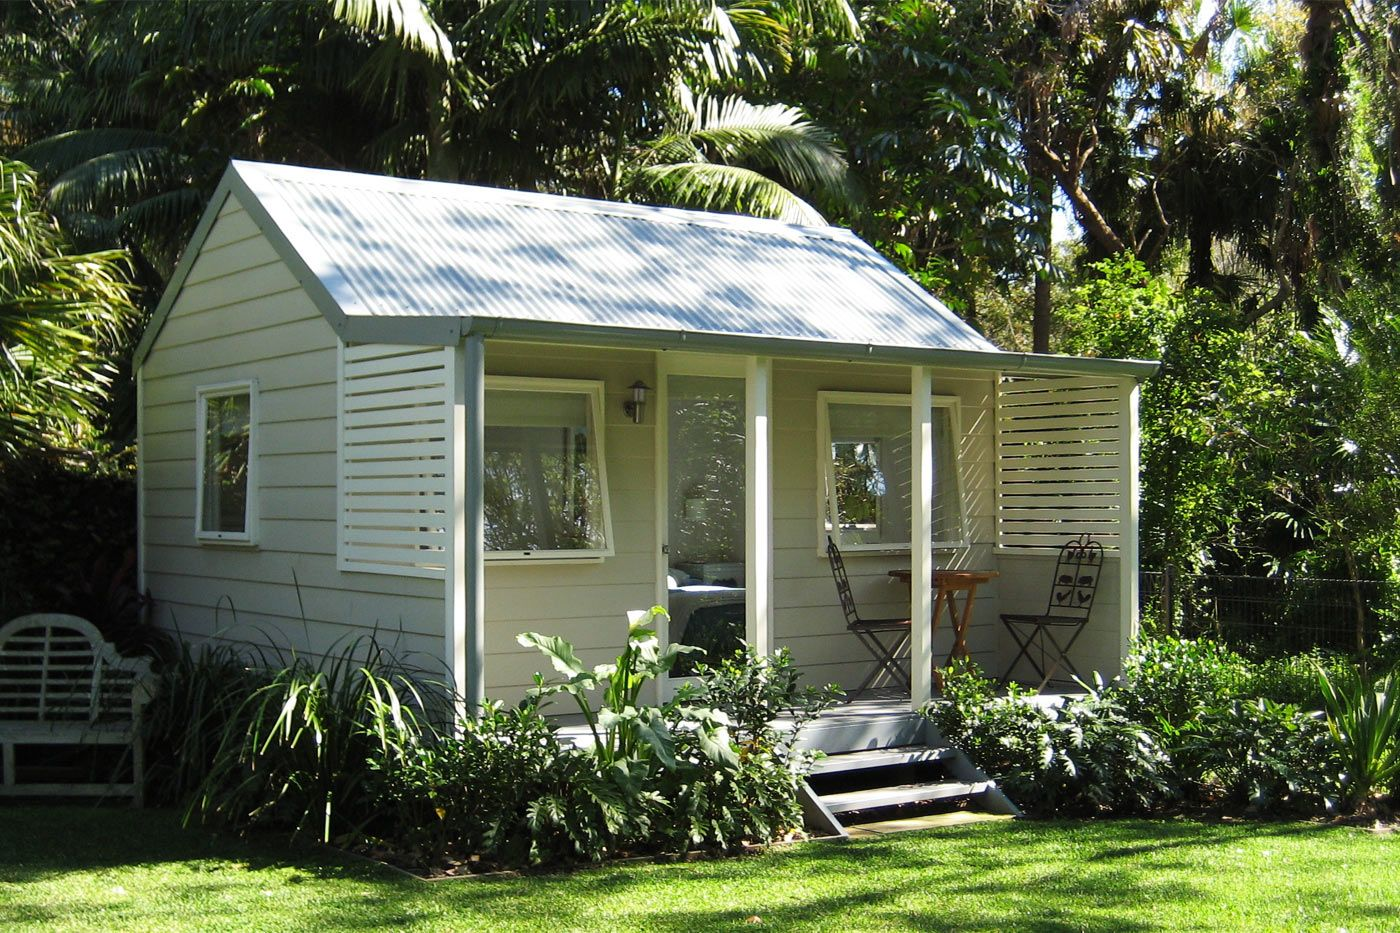 backyard cabins | backyard cabins - cedar, weatherboard, country